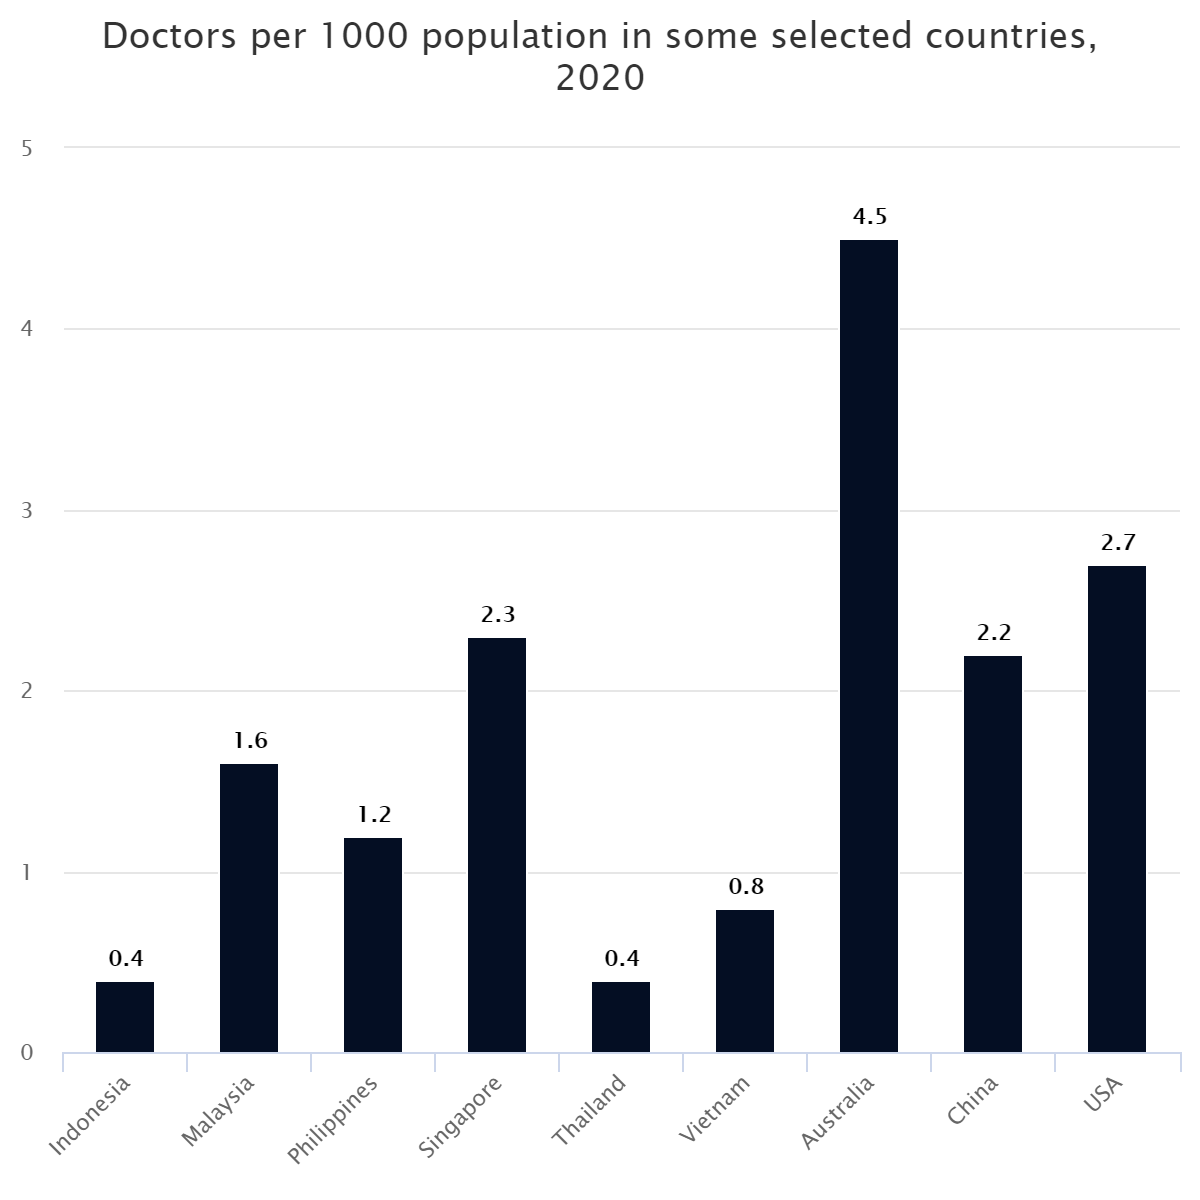 Doctors per 1000 population in some selected countries, 2020